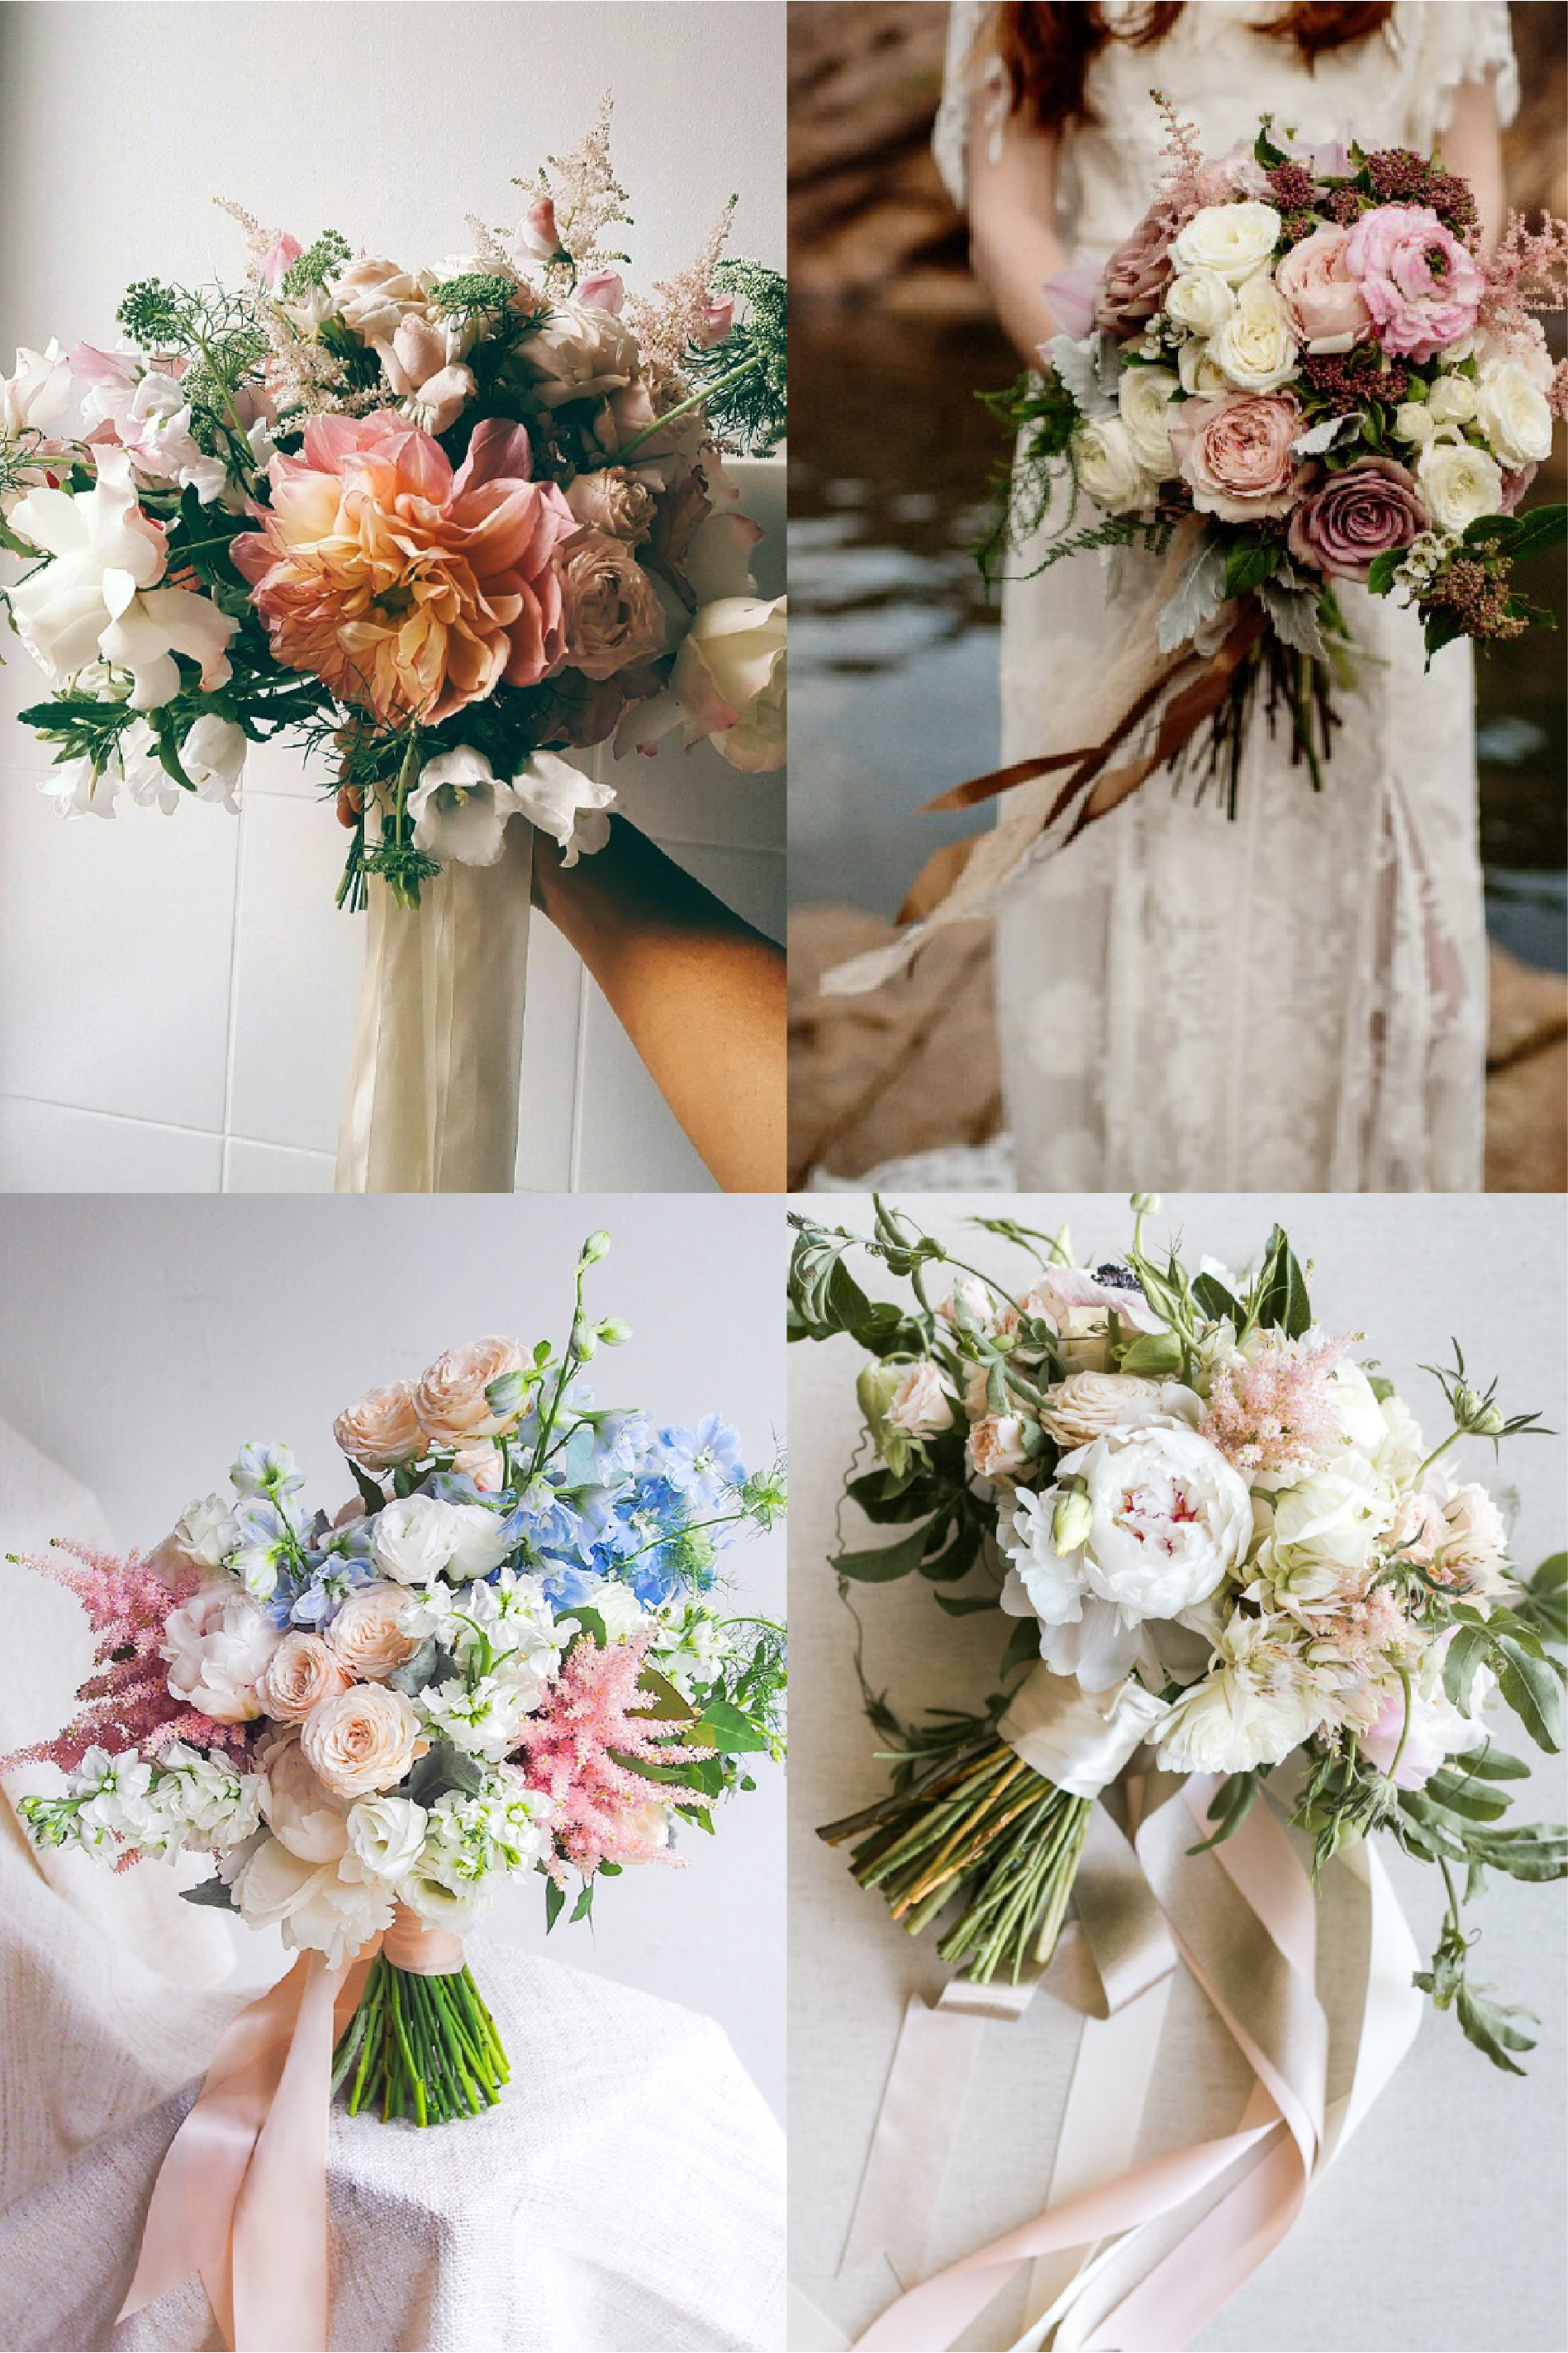 FROM CLOCKWISE, FROM TOP LEFT:  FLOWERS BY  LIME TREE BOWER  ;  FLOWERS BY   POPPY & WILLOW BLOOM  PHOTO BY  FIONA VAIL PHOTOGRAPHY ; FLOWERS BY  CHARMED EVENTS GROUP  AND PHOTO BY  JASMINE LEE ; FLOWERS BY   FLORAL MAGIC